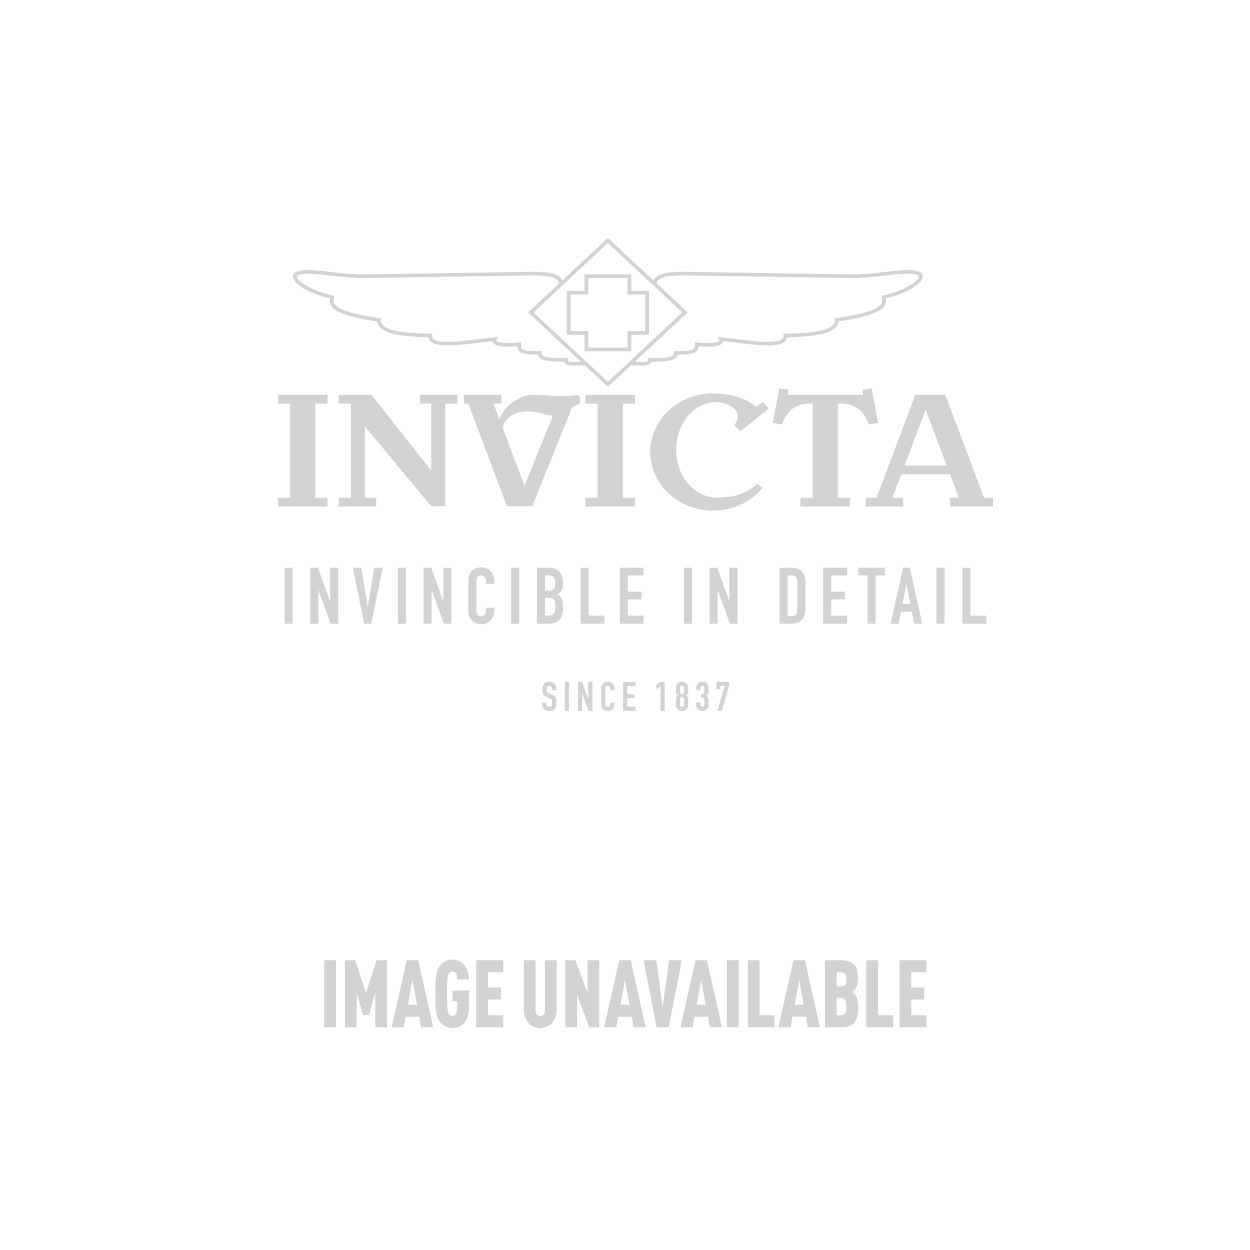 Invicta Specialty Swiss Movement Quartz Watch - Stainless Steel case Stainless Steel band - Model 9400